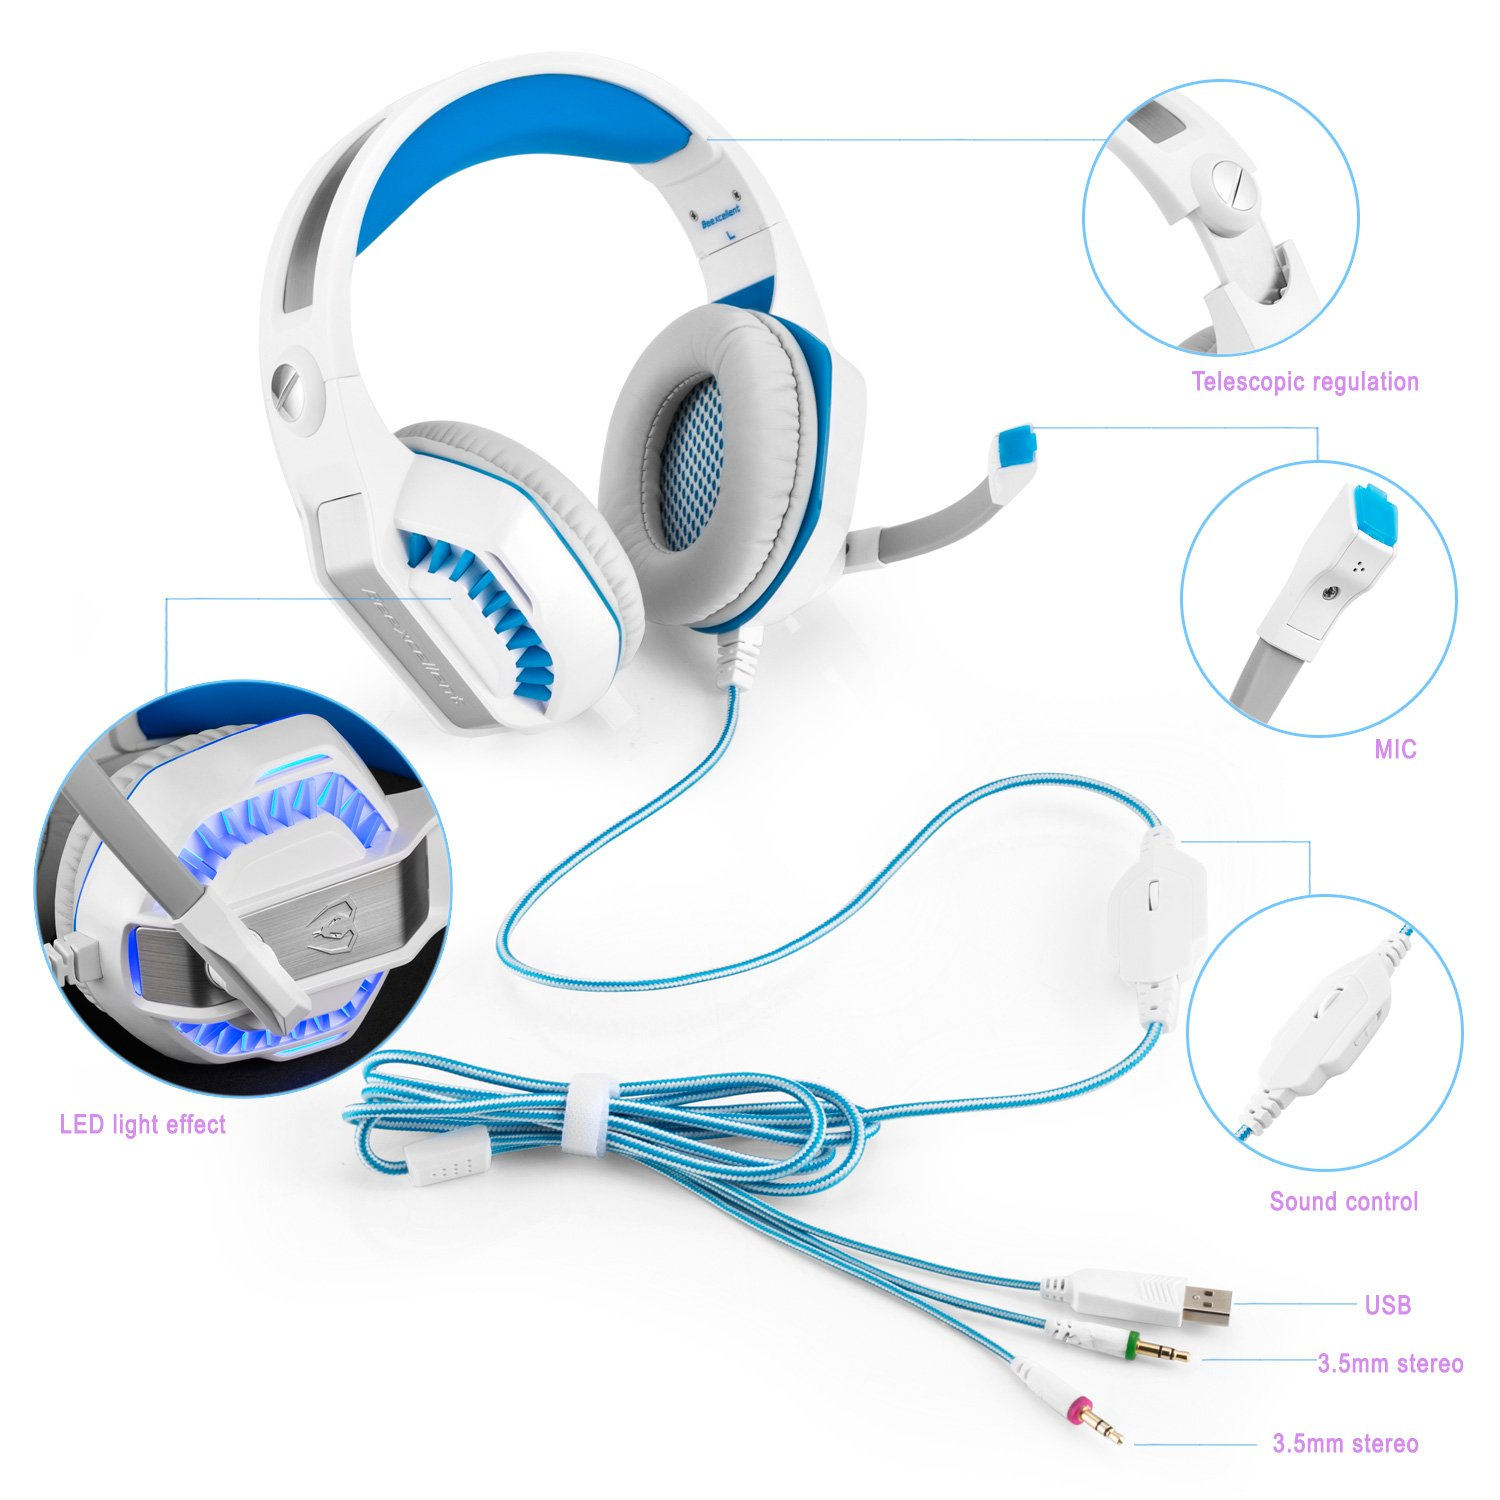 Cuffie Gaming Micolindun Microfono PC Headphone Gamer Microfono 3.5mm Basso  Stereo Volume Control LED per PC c54a7ca2e15d